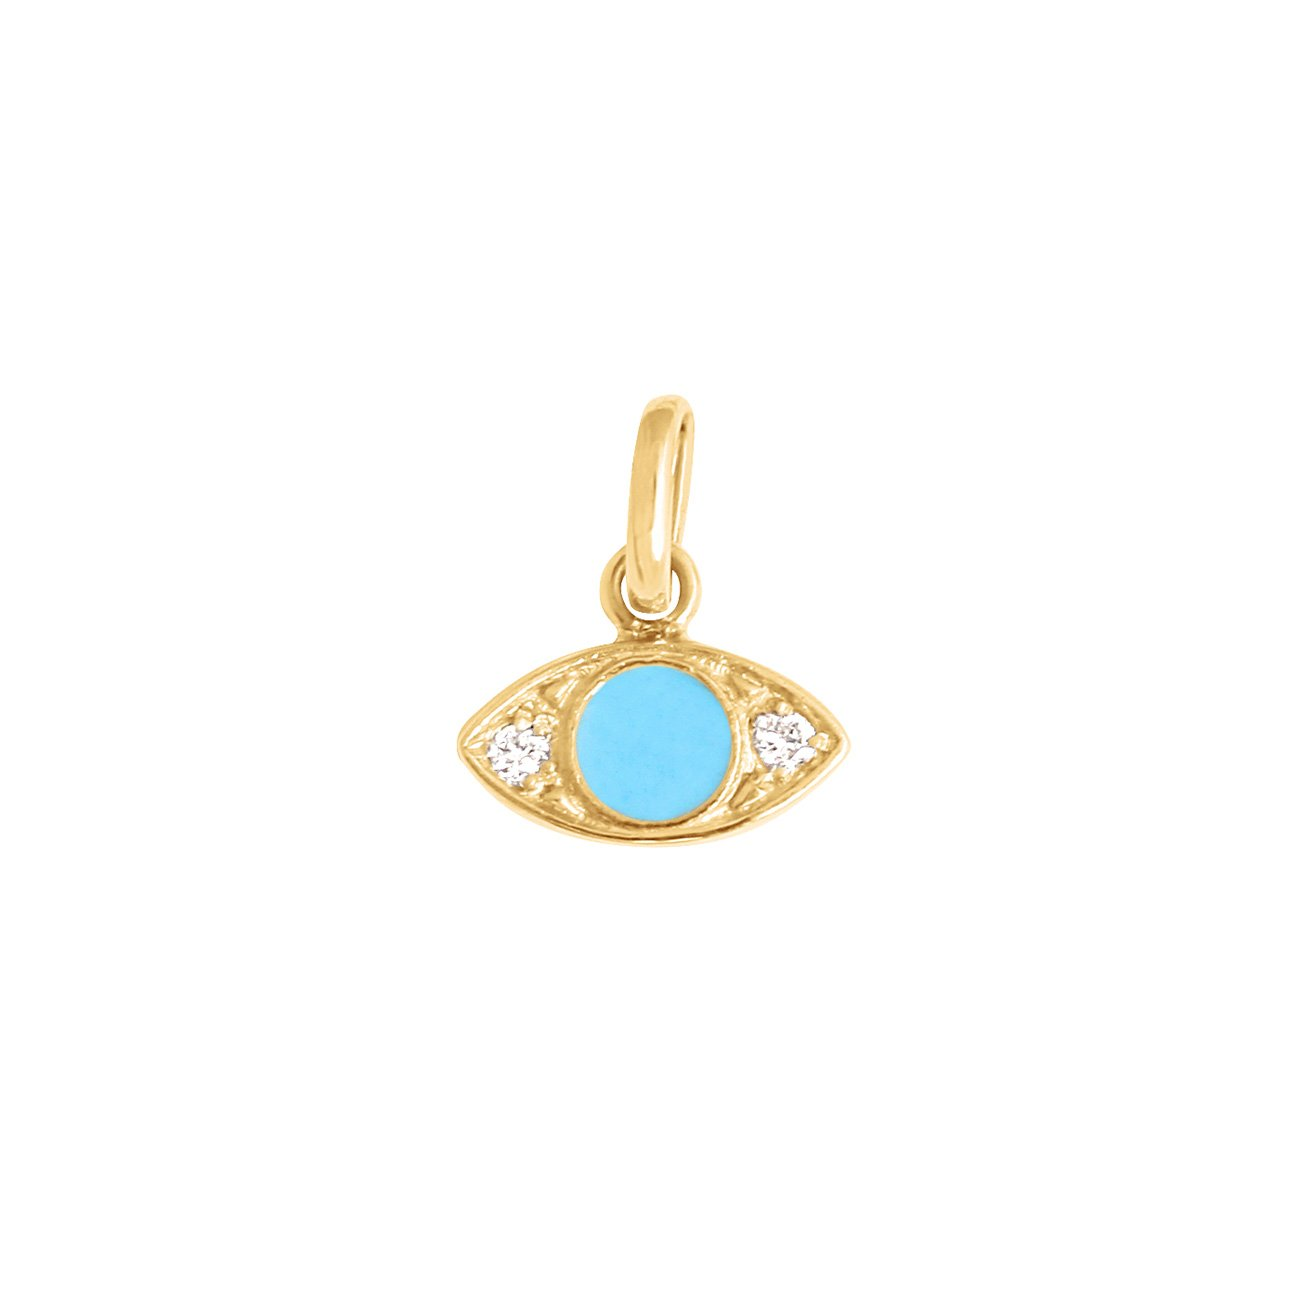 Gigi Clozeau - Eye Turquoise Resin diamonds pendant, Yellow Gold